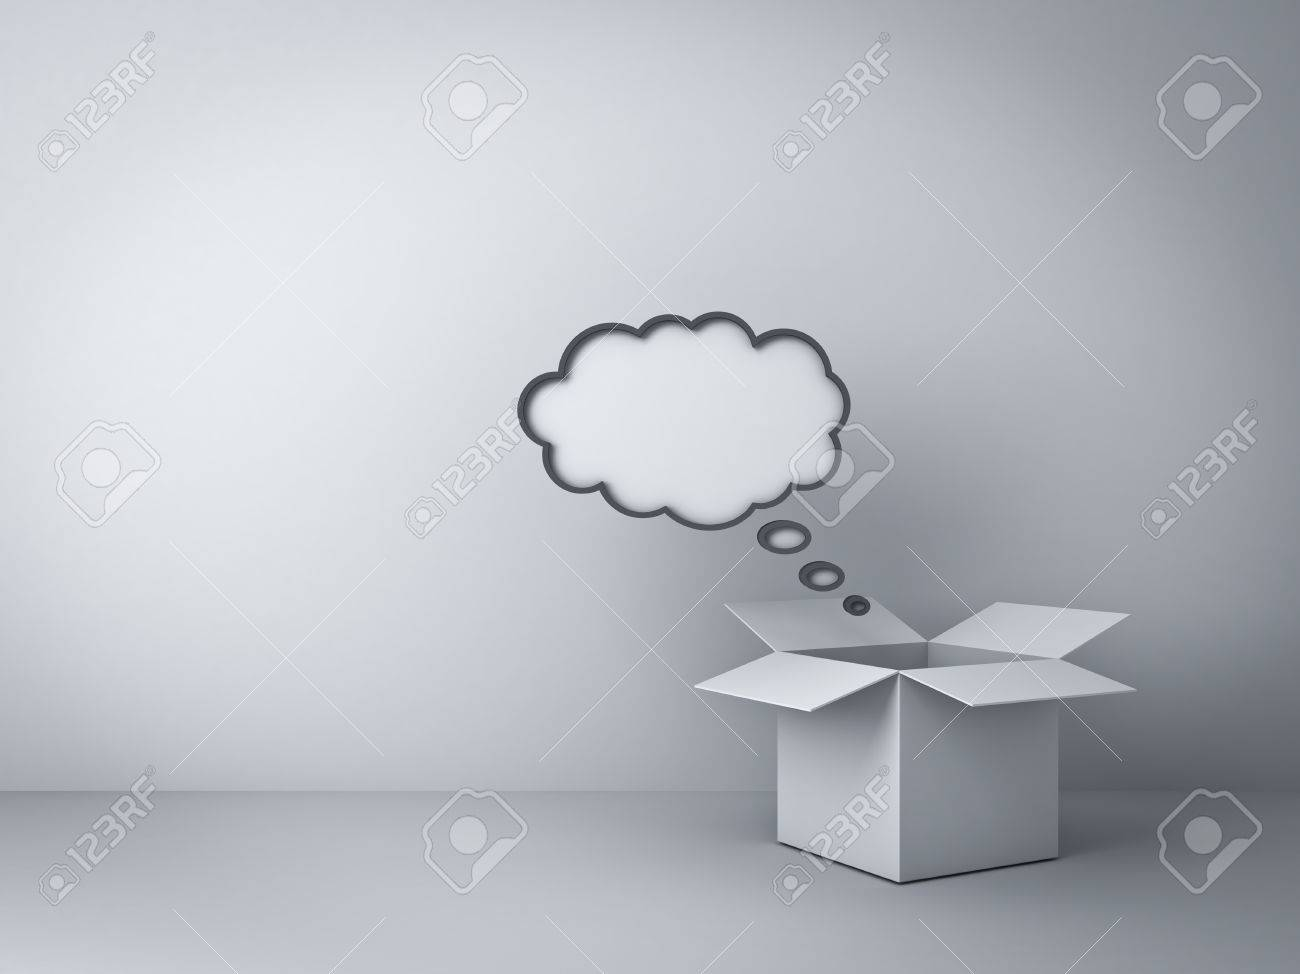 246 Thinking Out Of The Box Stock Vector Illustration And Royalty ...